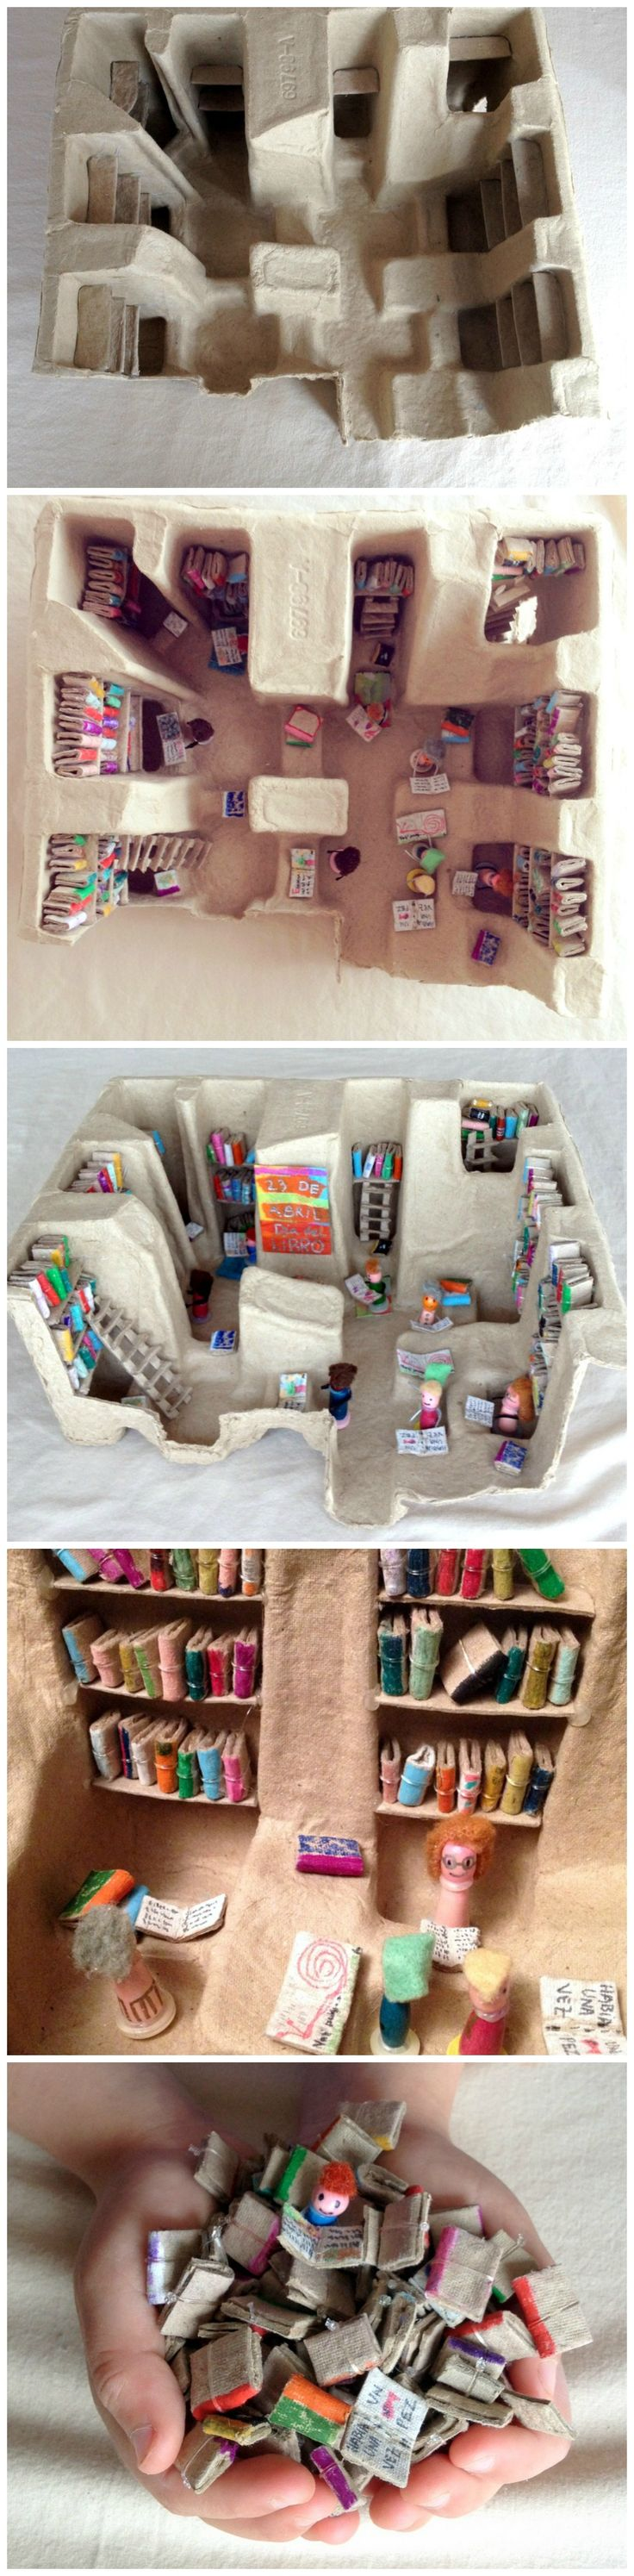 Library made out of cardboard :: junk model :: small world ideas